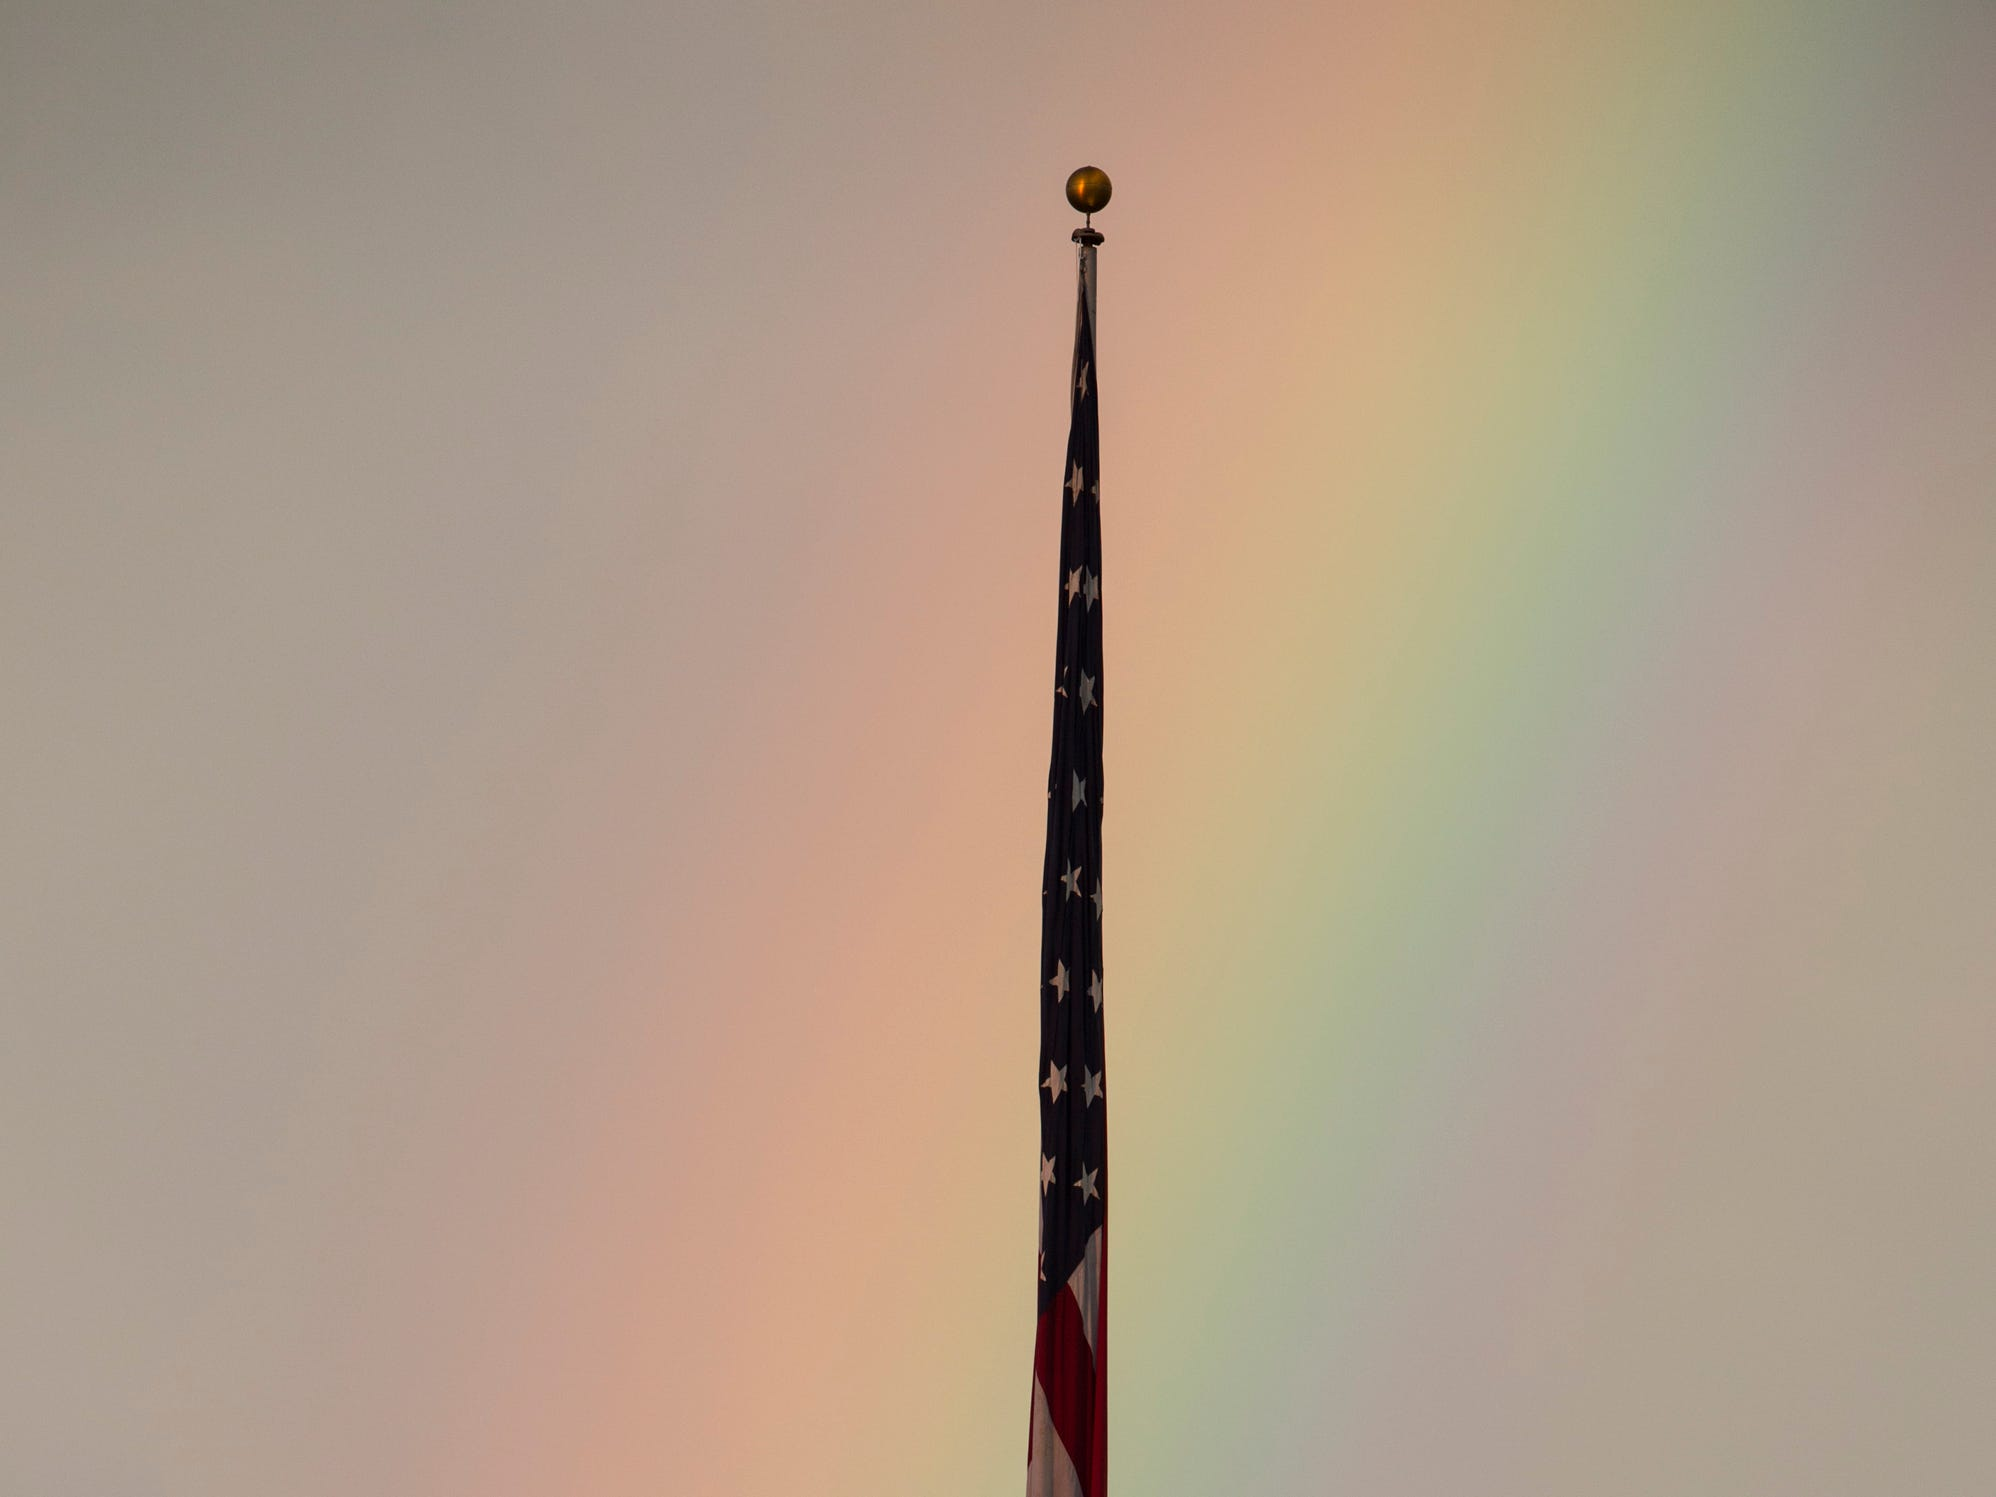 A rainbow is seen over the flag pole towards the end of the weather delay at Jordan-Hare Stadium in Auburn, Ala., on Saturday, Sept. 29, 2018. Auburn defeated  Southern Miss 24-13.